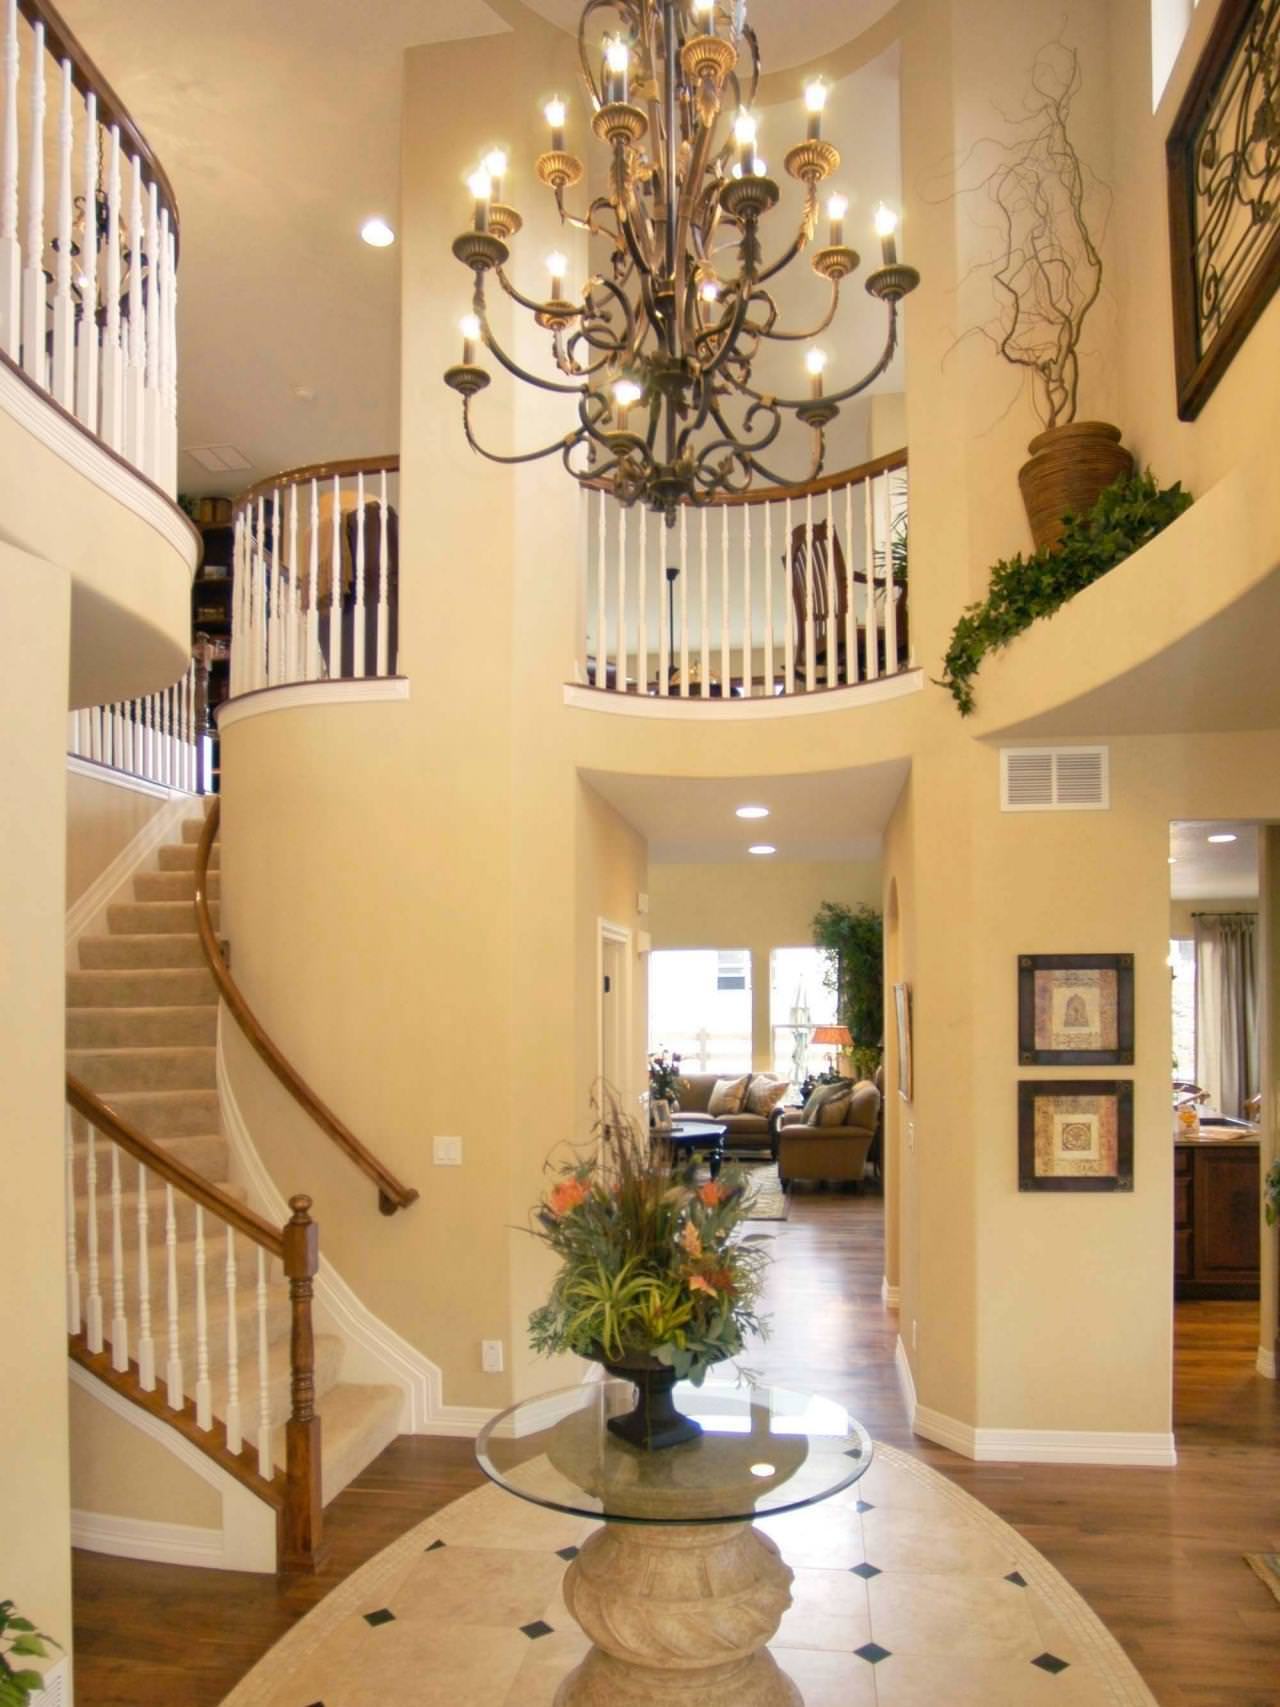 Best Light Fixtures For Hallways Ideas With Chandeliers For Hallways (View 3 of 15)